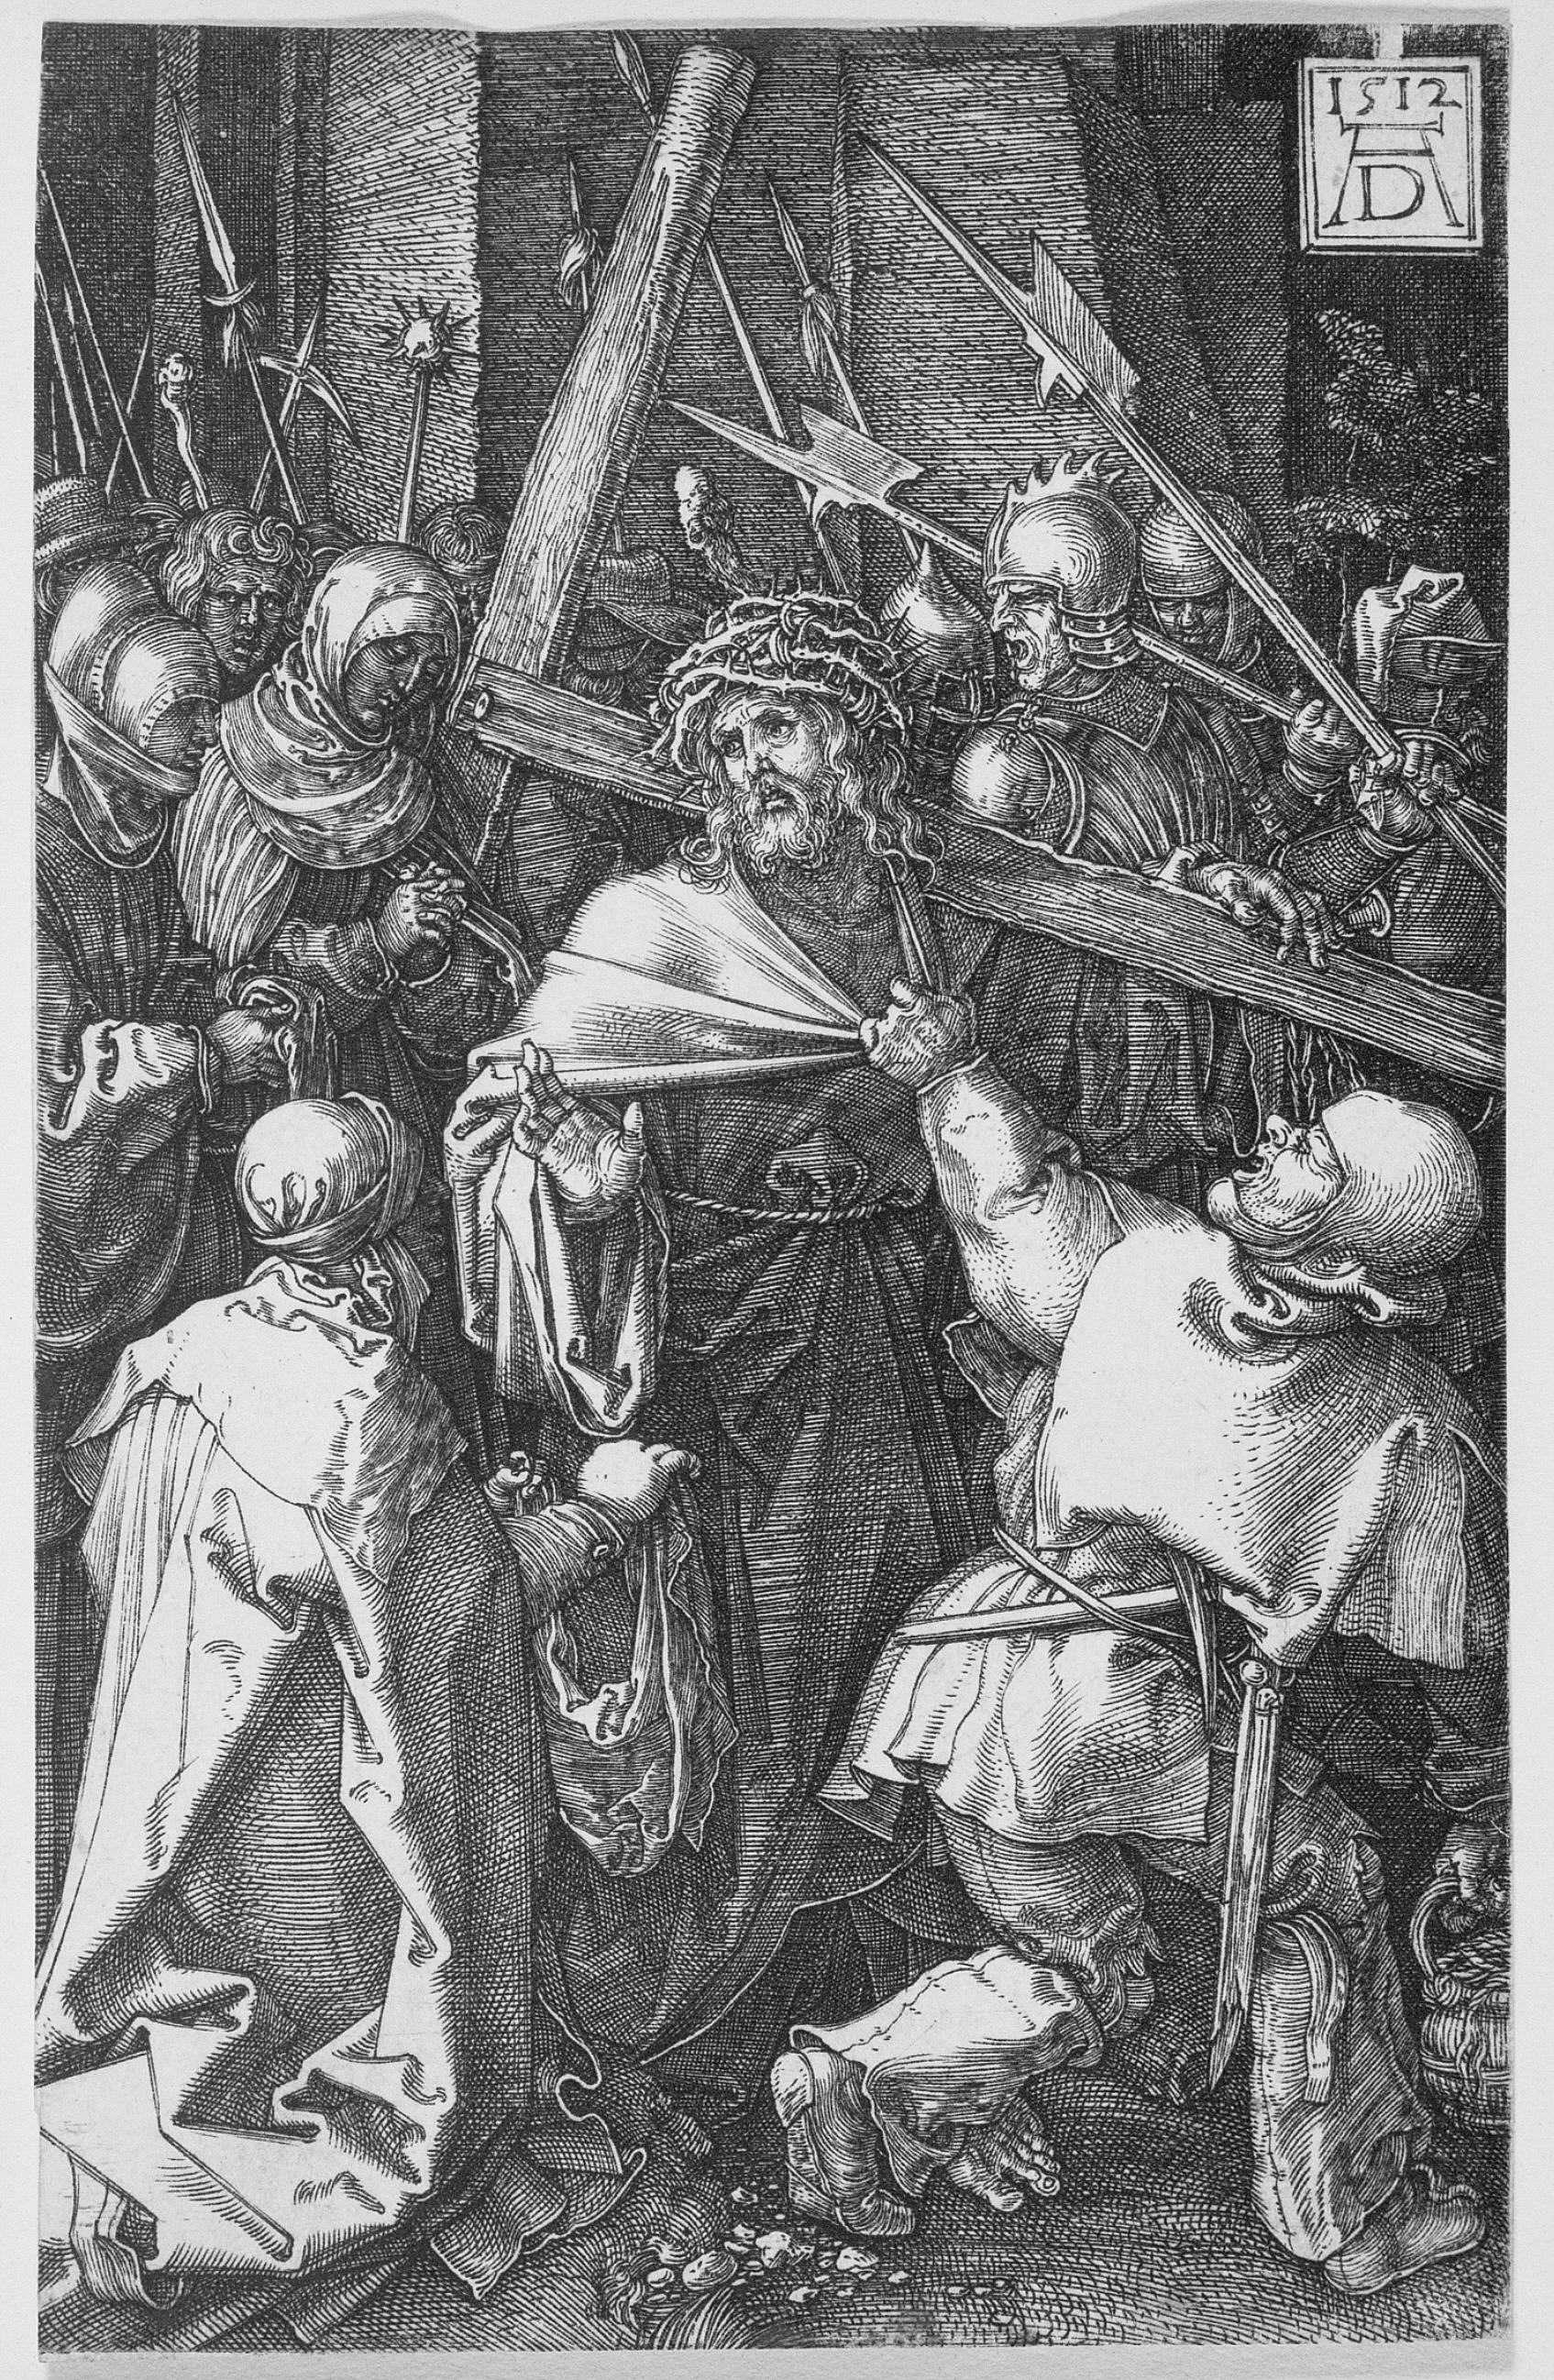 Cutting a Fine Line: Durer's Engraved Passion